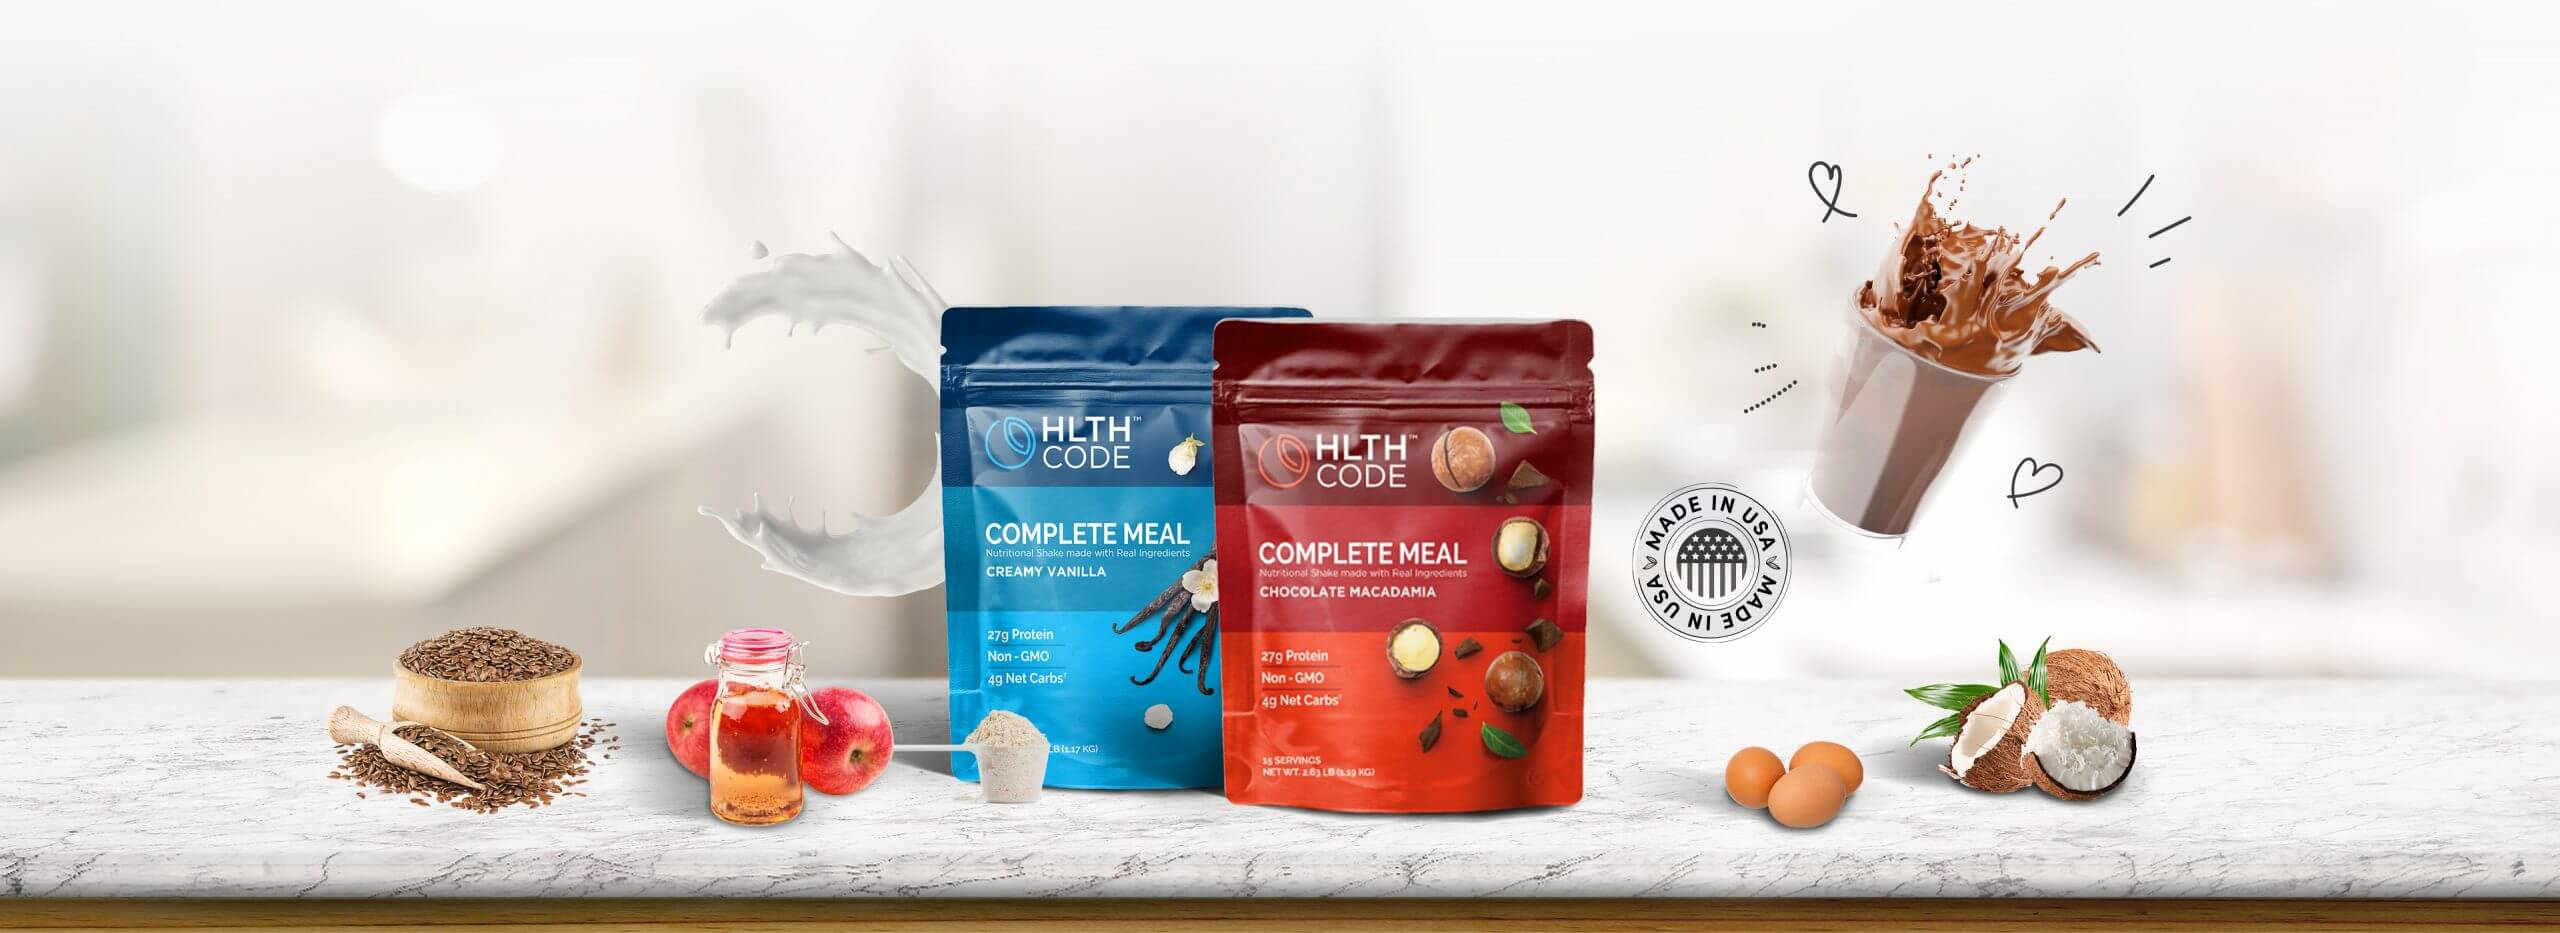 hlthcode-meal-replacement-shake-coupon